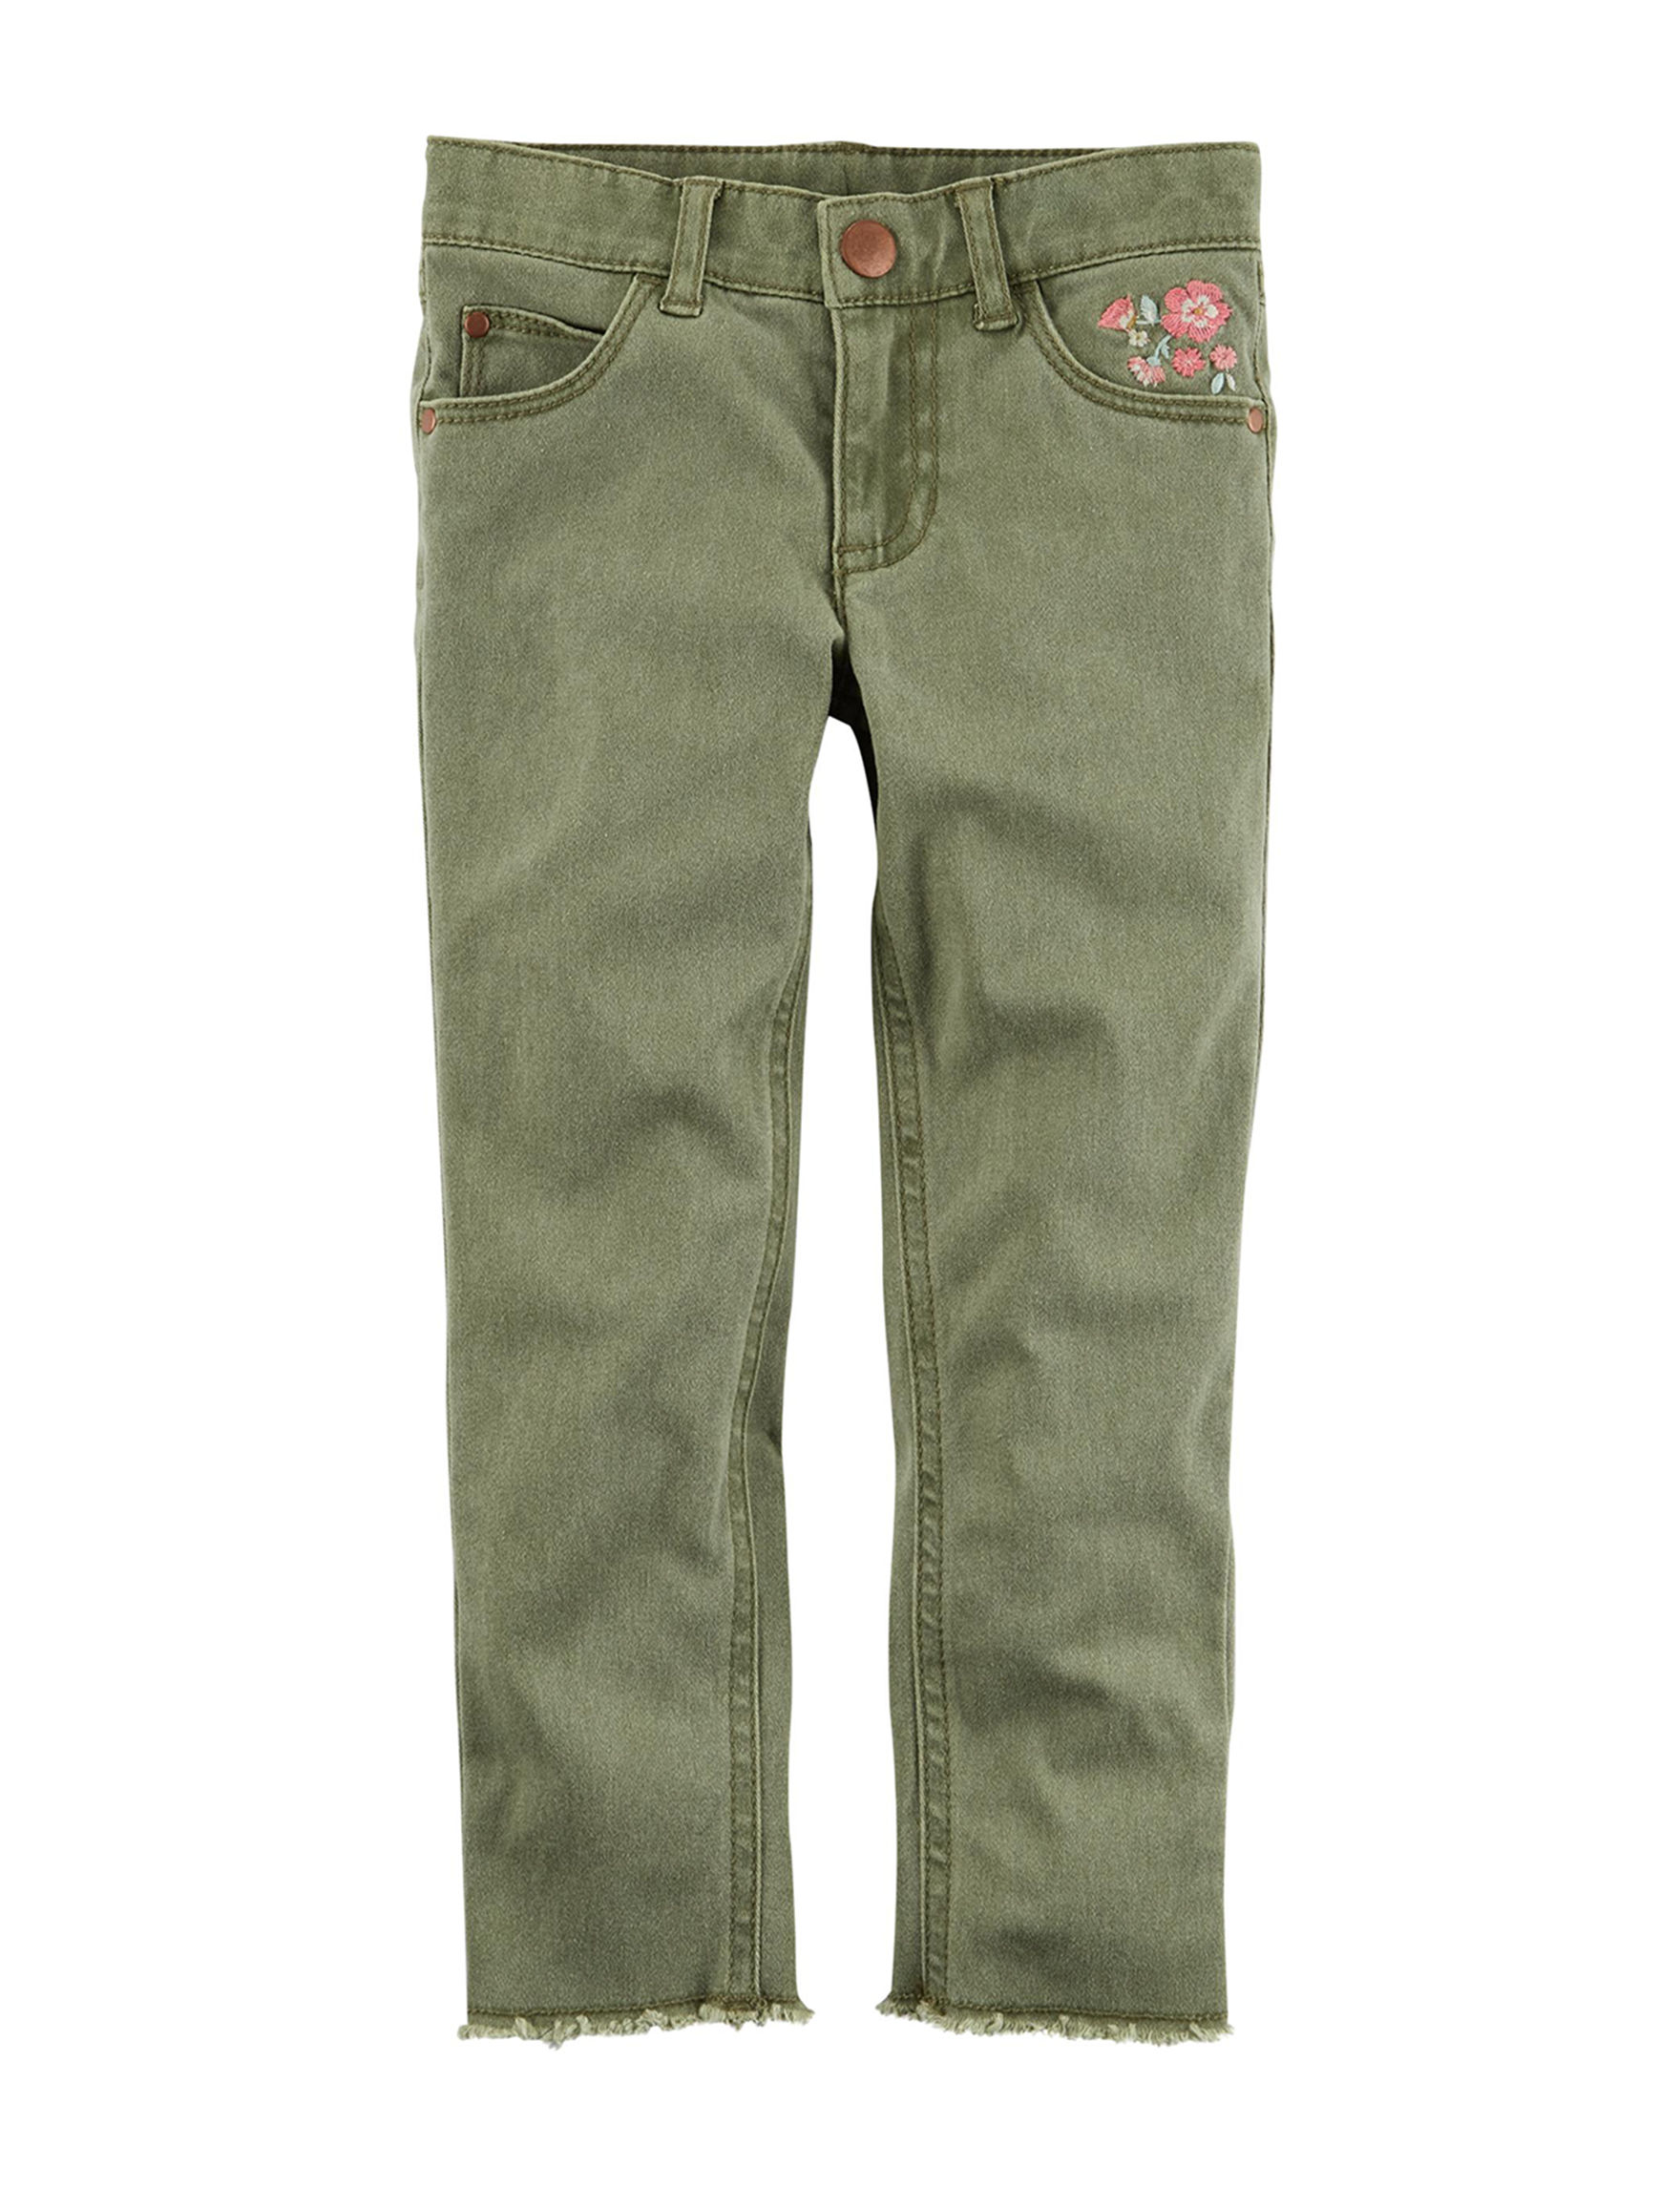 Carter's Olive Straight